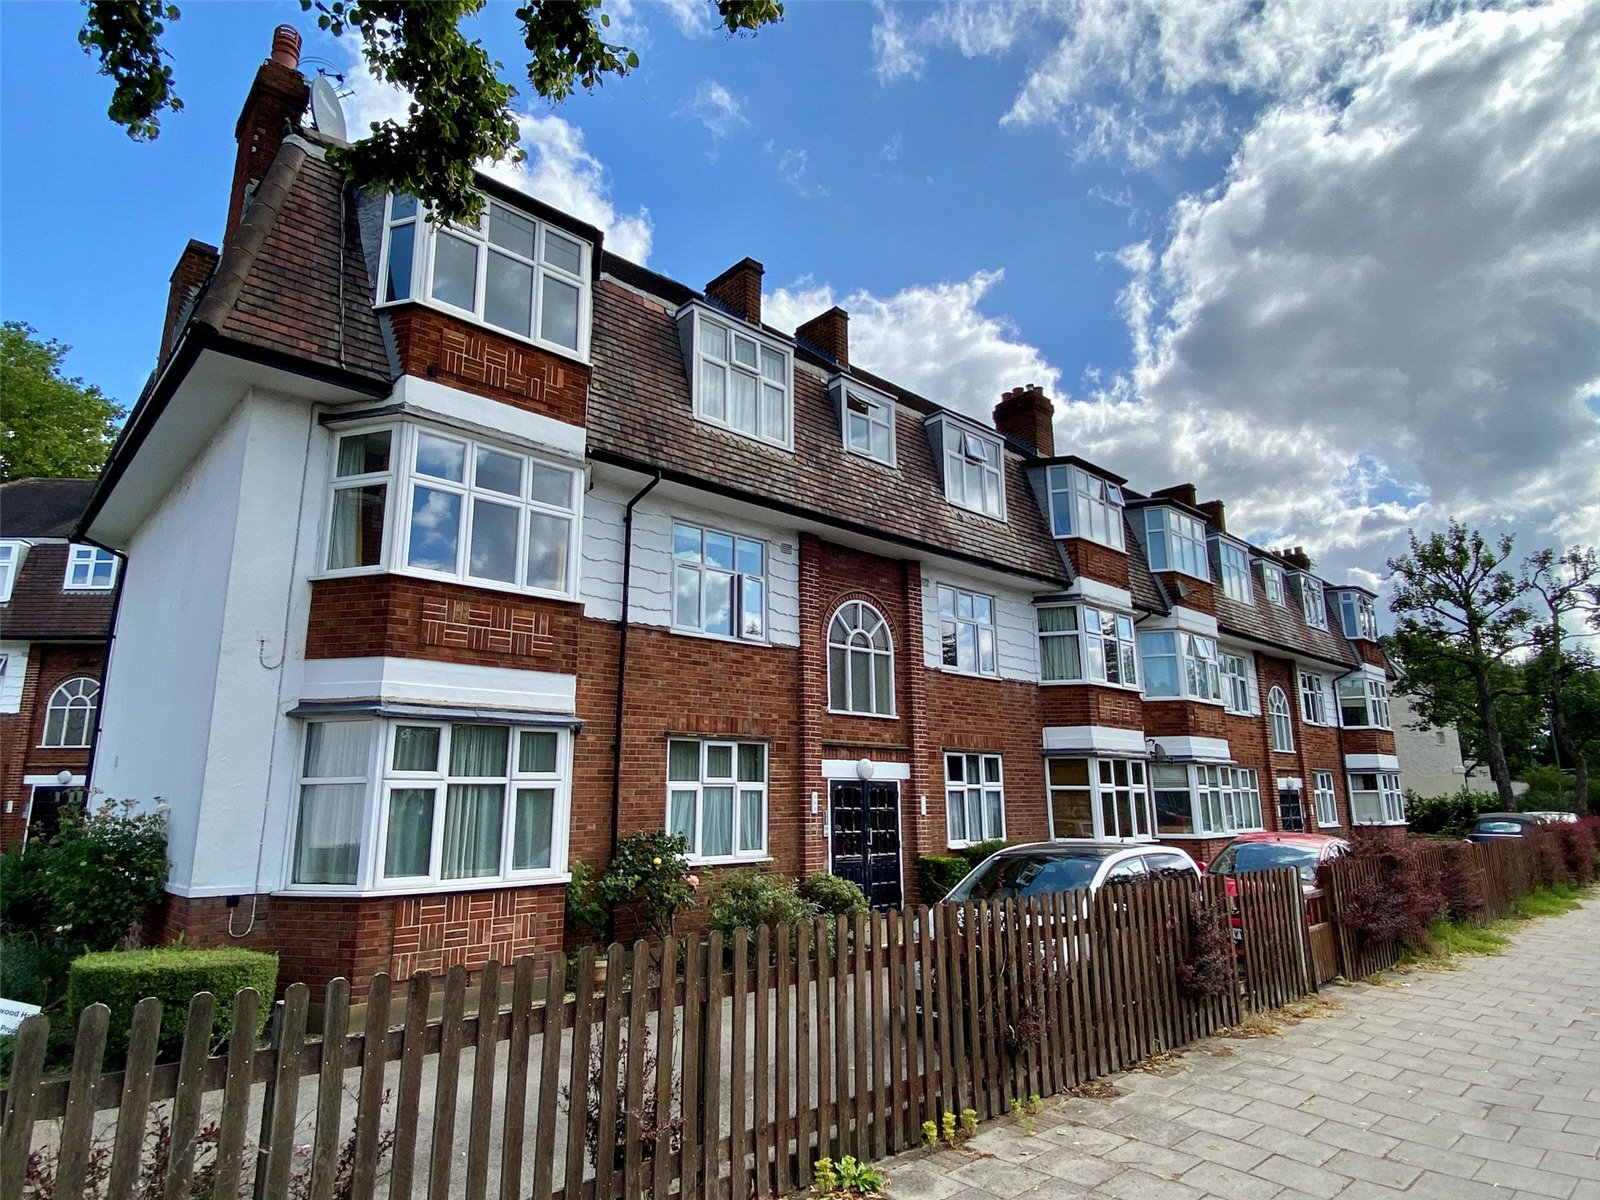 2 bed apartment to rent in East Finchley, N2 0TA 0